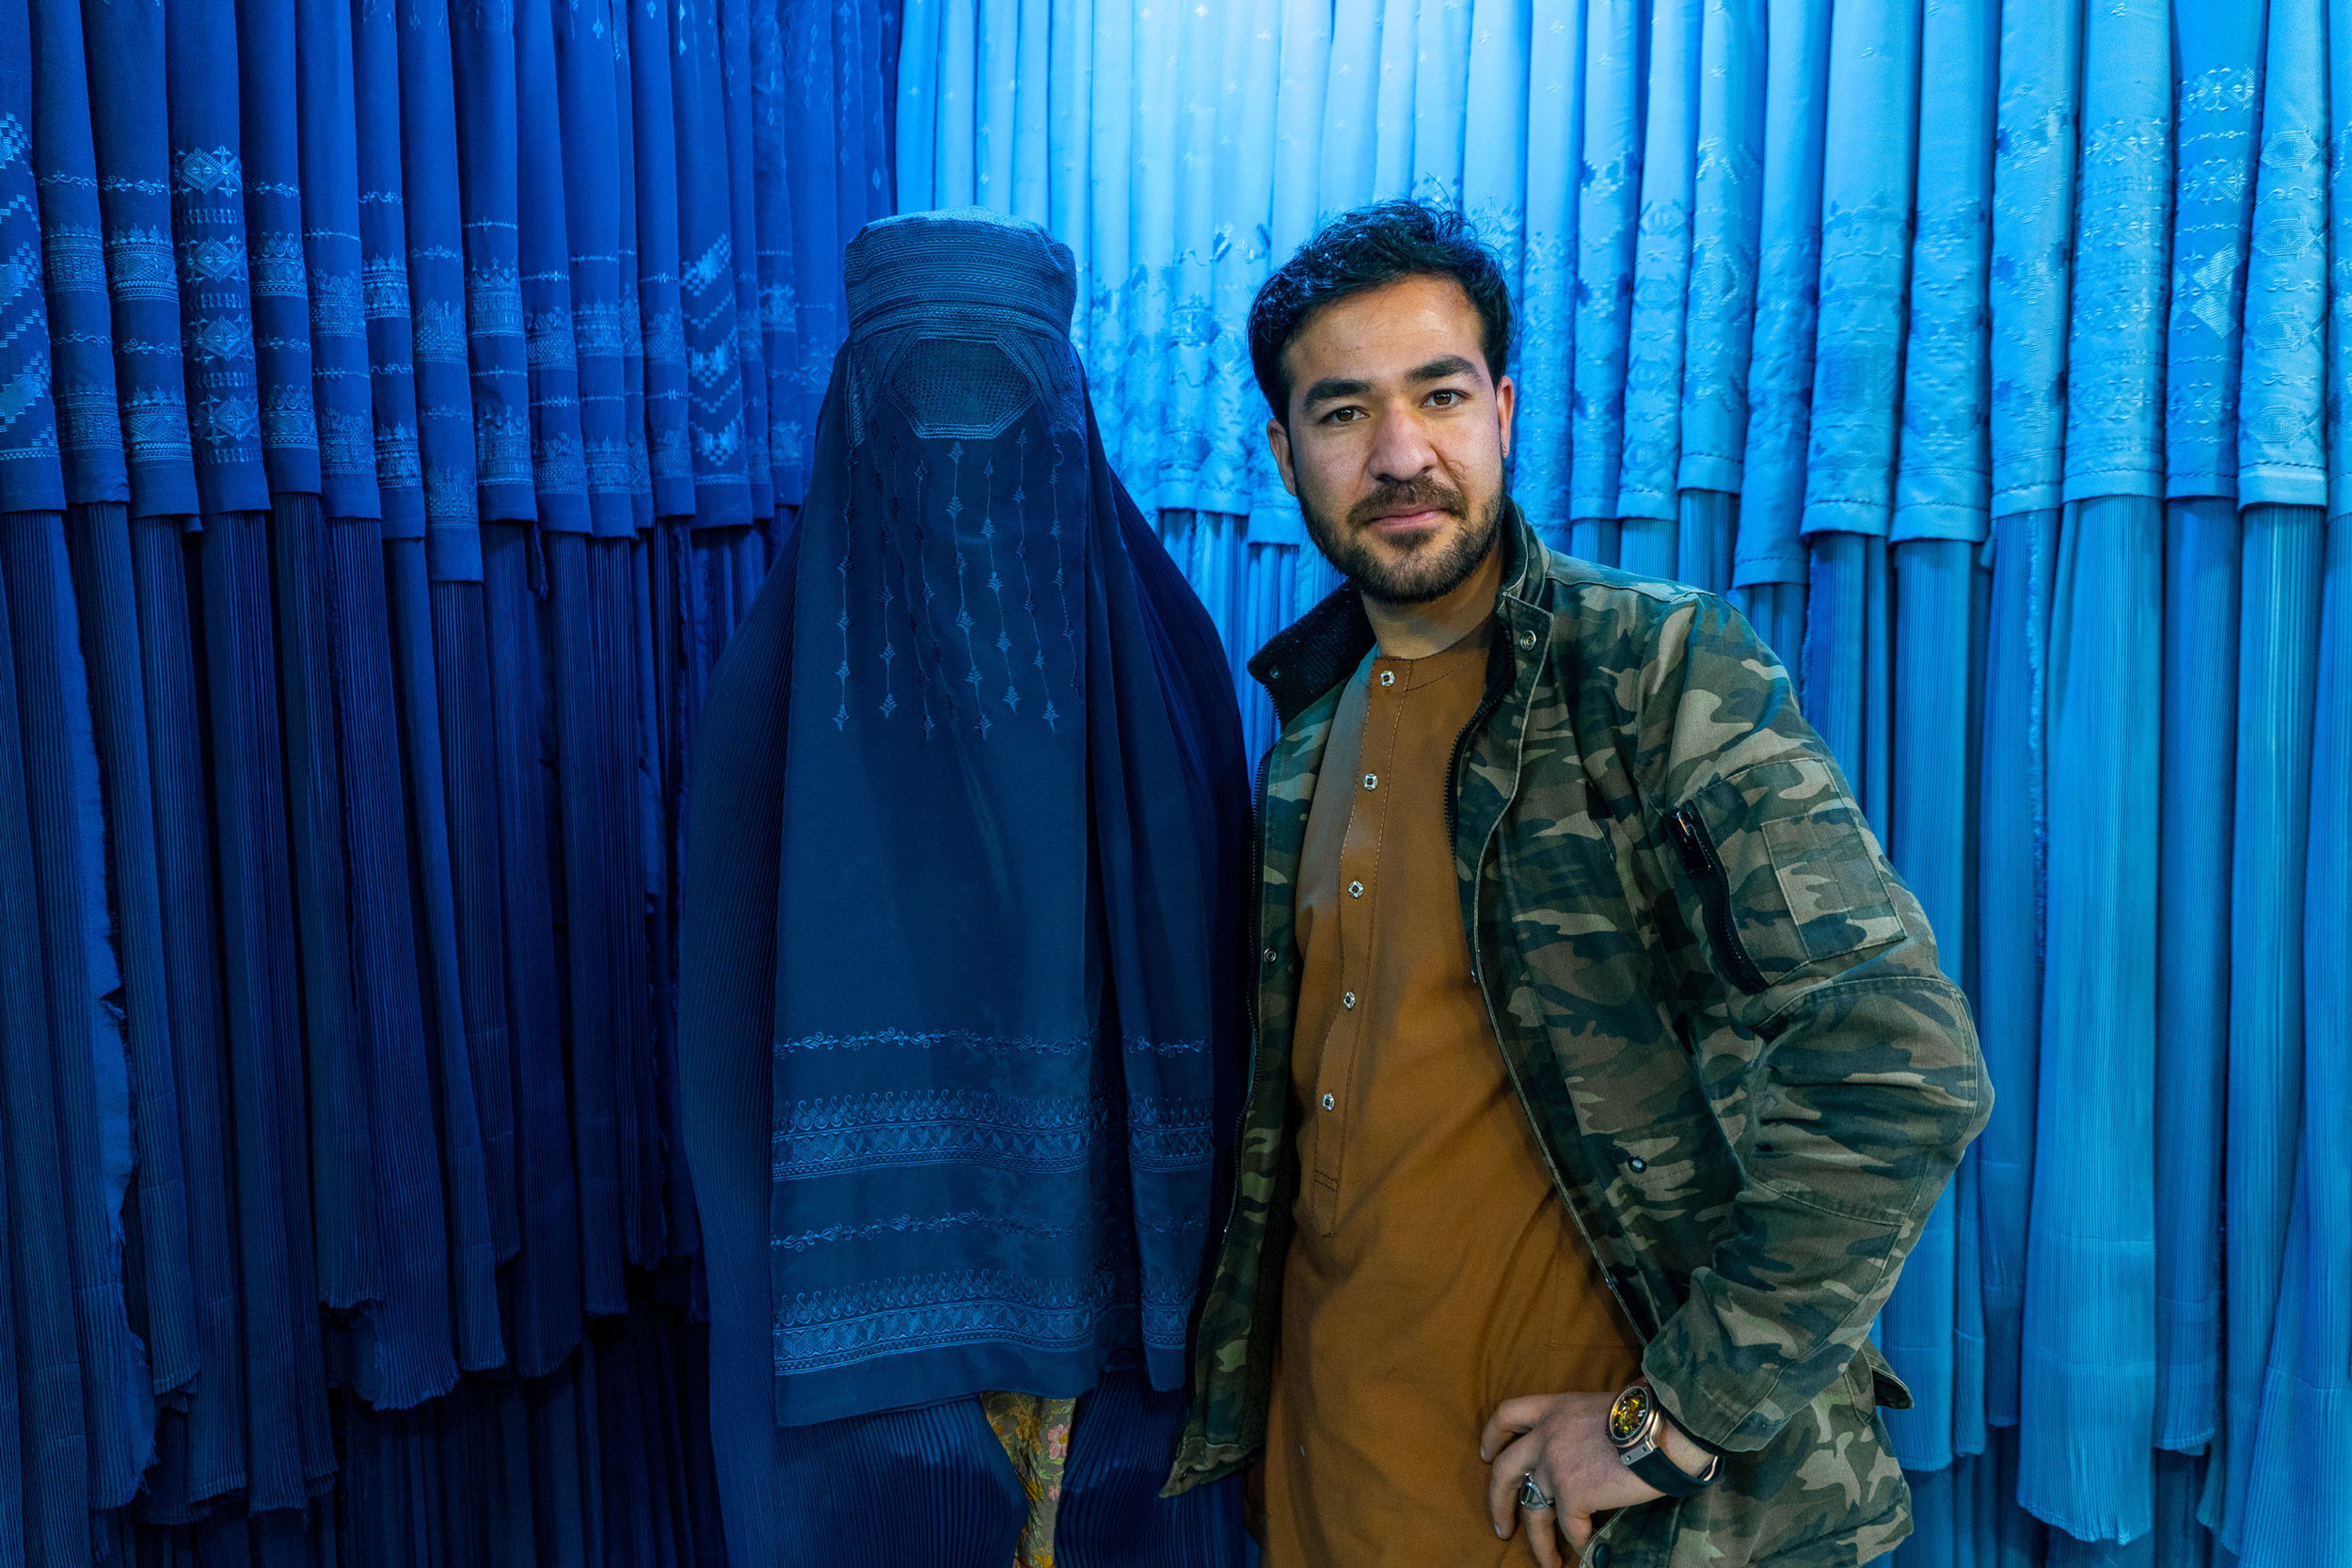 A  chadri  (burqa) salesman poses next to his newest customer at a burqa shop in the northern city of Mazar-i Sharif. The  chadri  has been worn by Pashtun women since before Islam arrived in Afghanistan. While it became a rare to see the garment in the cities during the swinging 60s, during the Taliban years the  chadri  was made mandatory for women to wear in public. Today is is relatively common still, although there is significantly more choice for women in urban areas of Afghanistan.